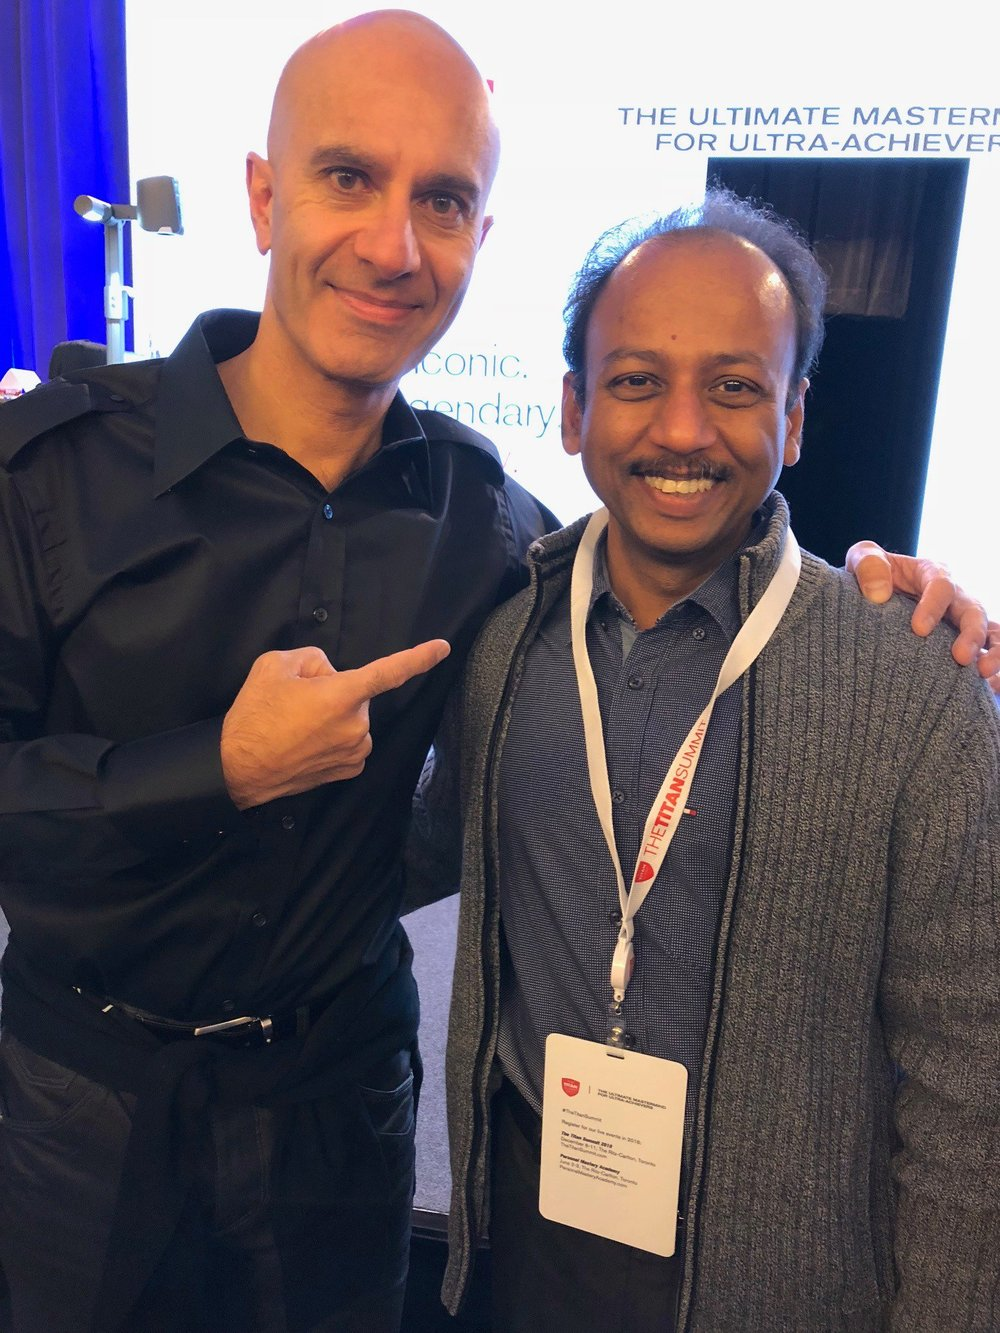 DECEMBER 2017:   Dileep Punalur  (right), ceo of  vacker global , and  robin sharma  (left), author of  The Monk Who Sold His Ferrari